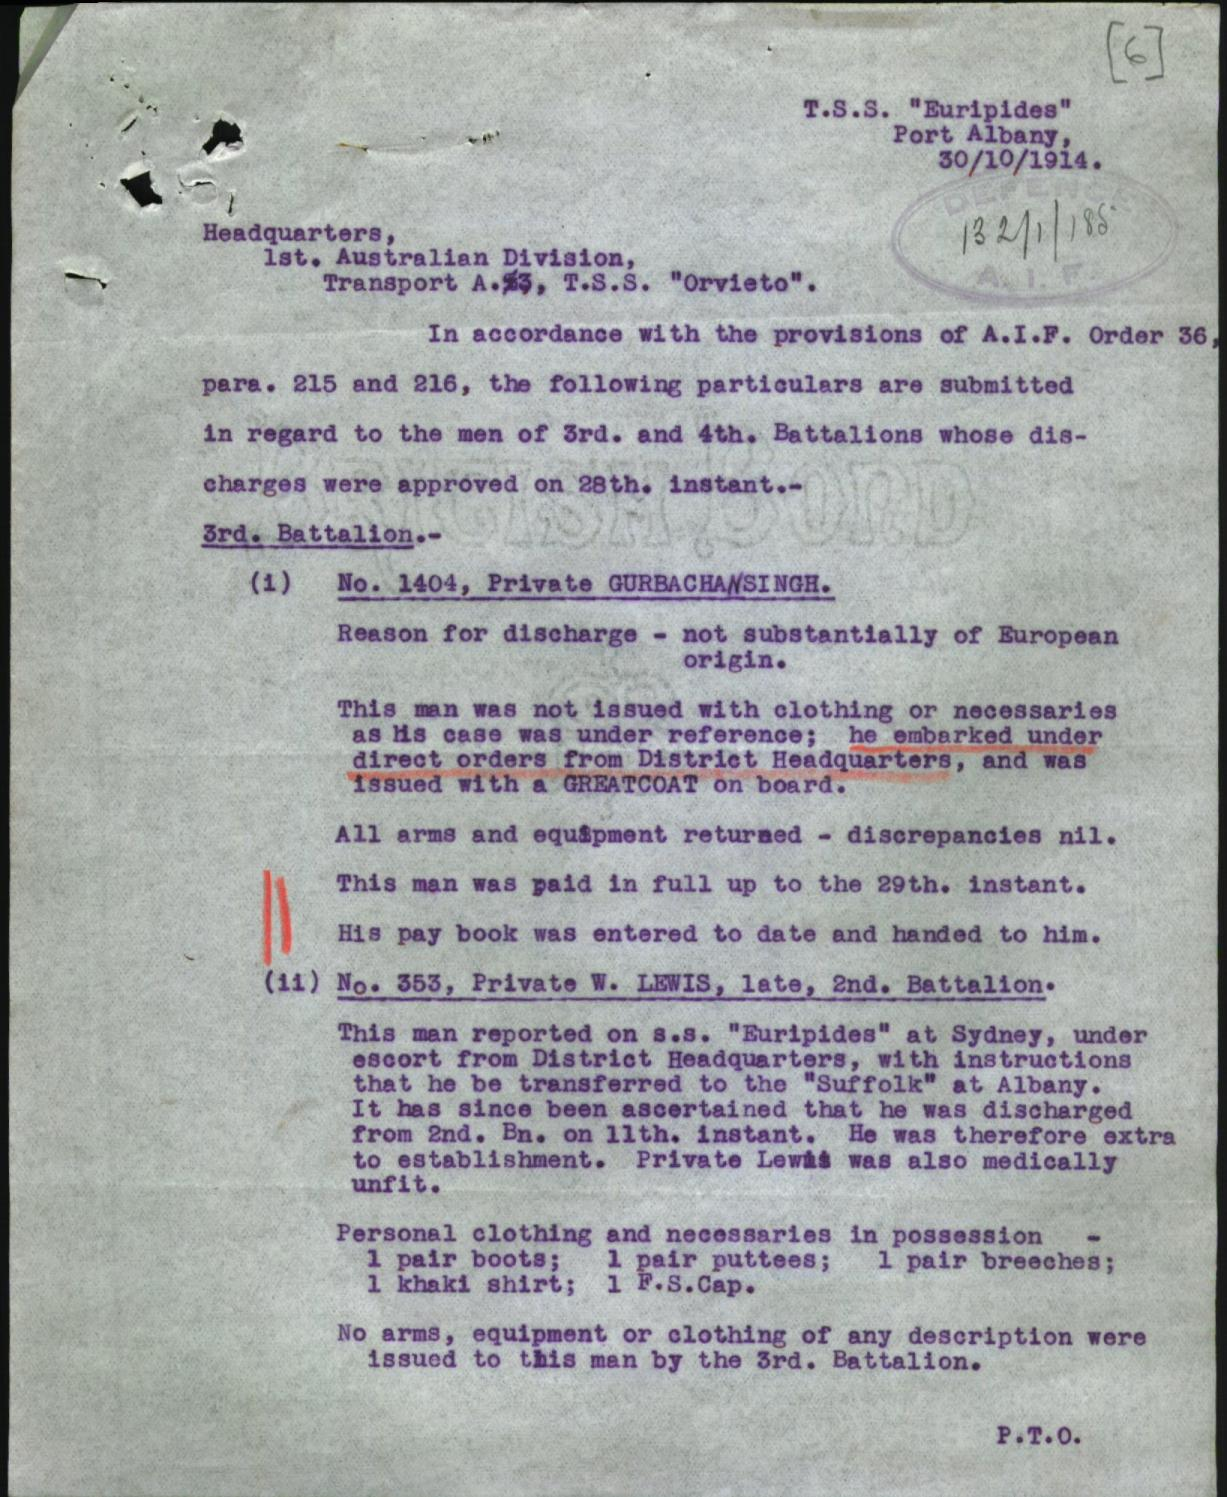 Re-enlistment documentation for WW1. Source: National Archives of Australia (NAA:B2455, Singh Gurbachan, 8085591) https://recordsearch.naa.gov.au/SearchNRetrieve/Interface/ViewImage.aspx?B=8085591